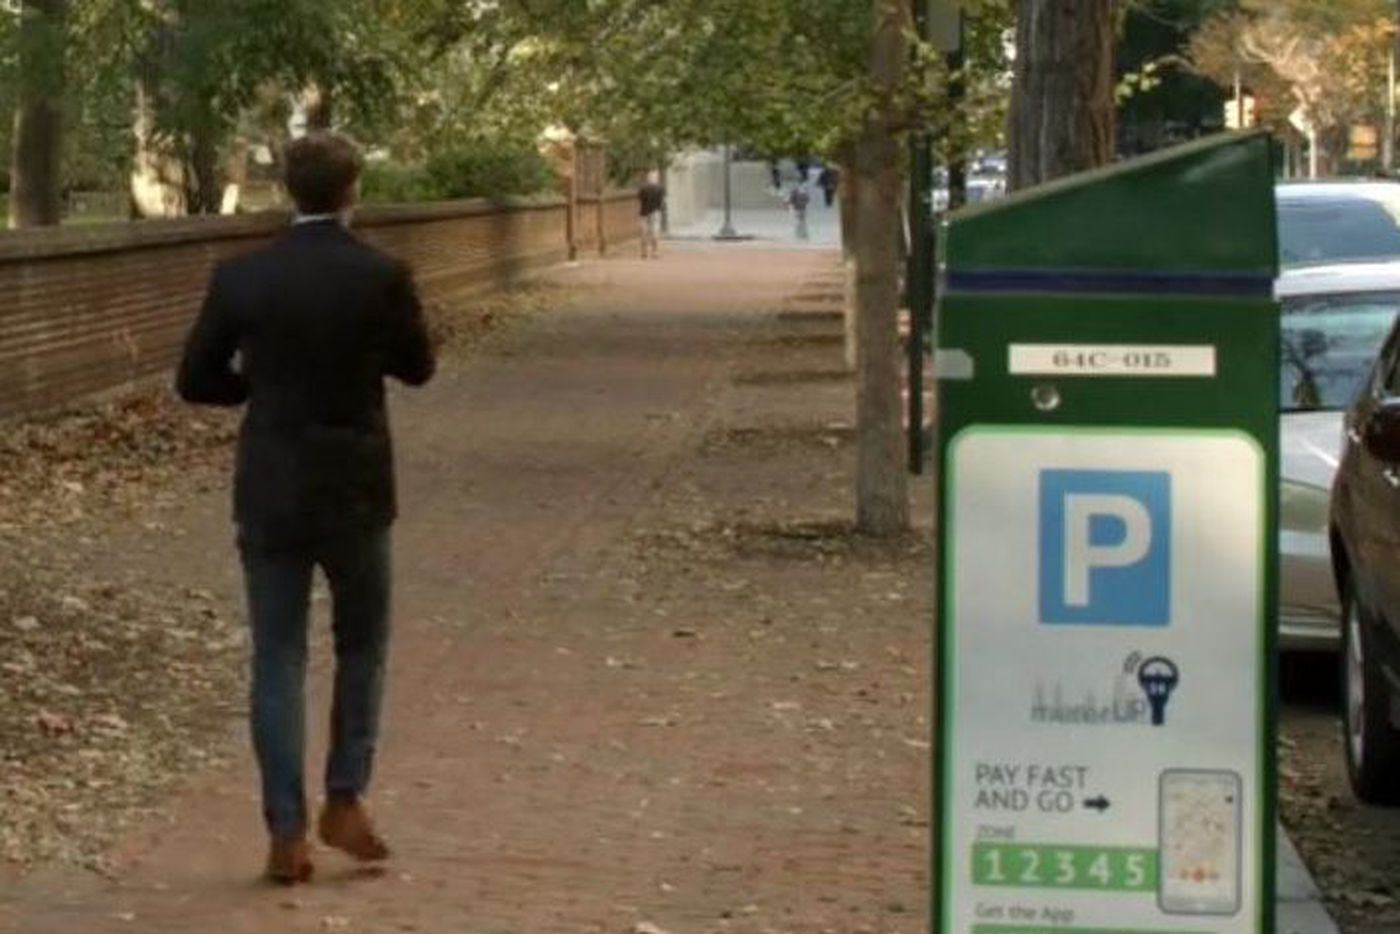 Philly taking another try at pay-by-phone parking